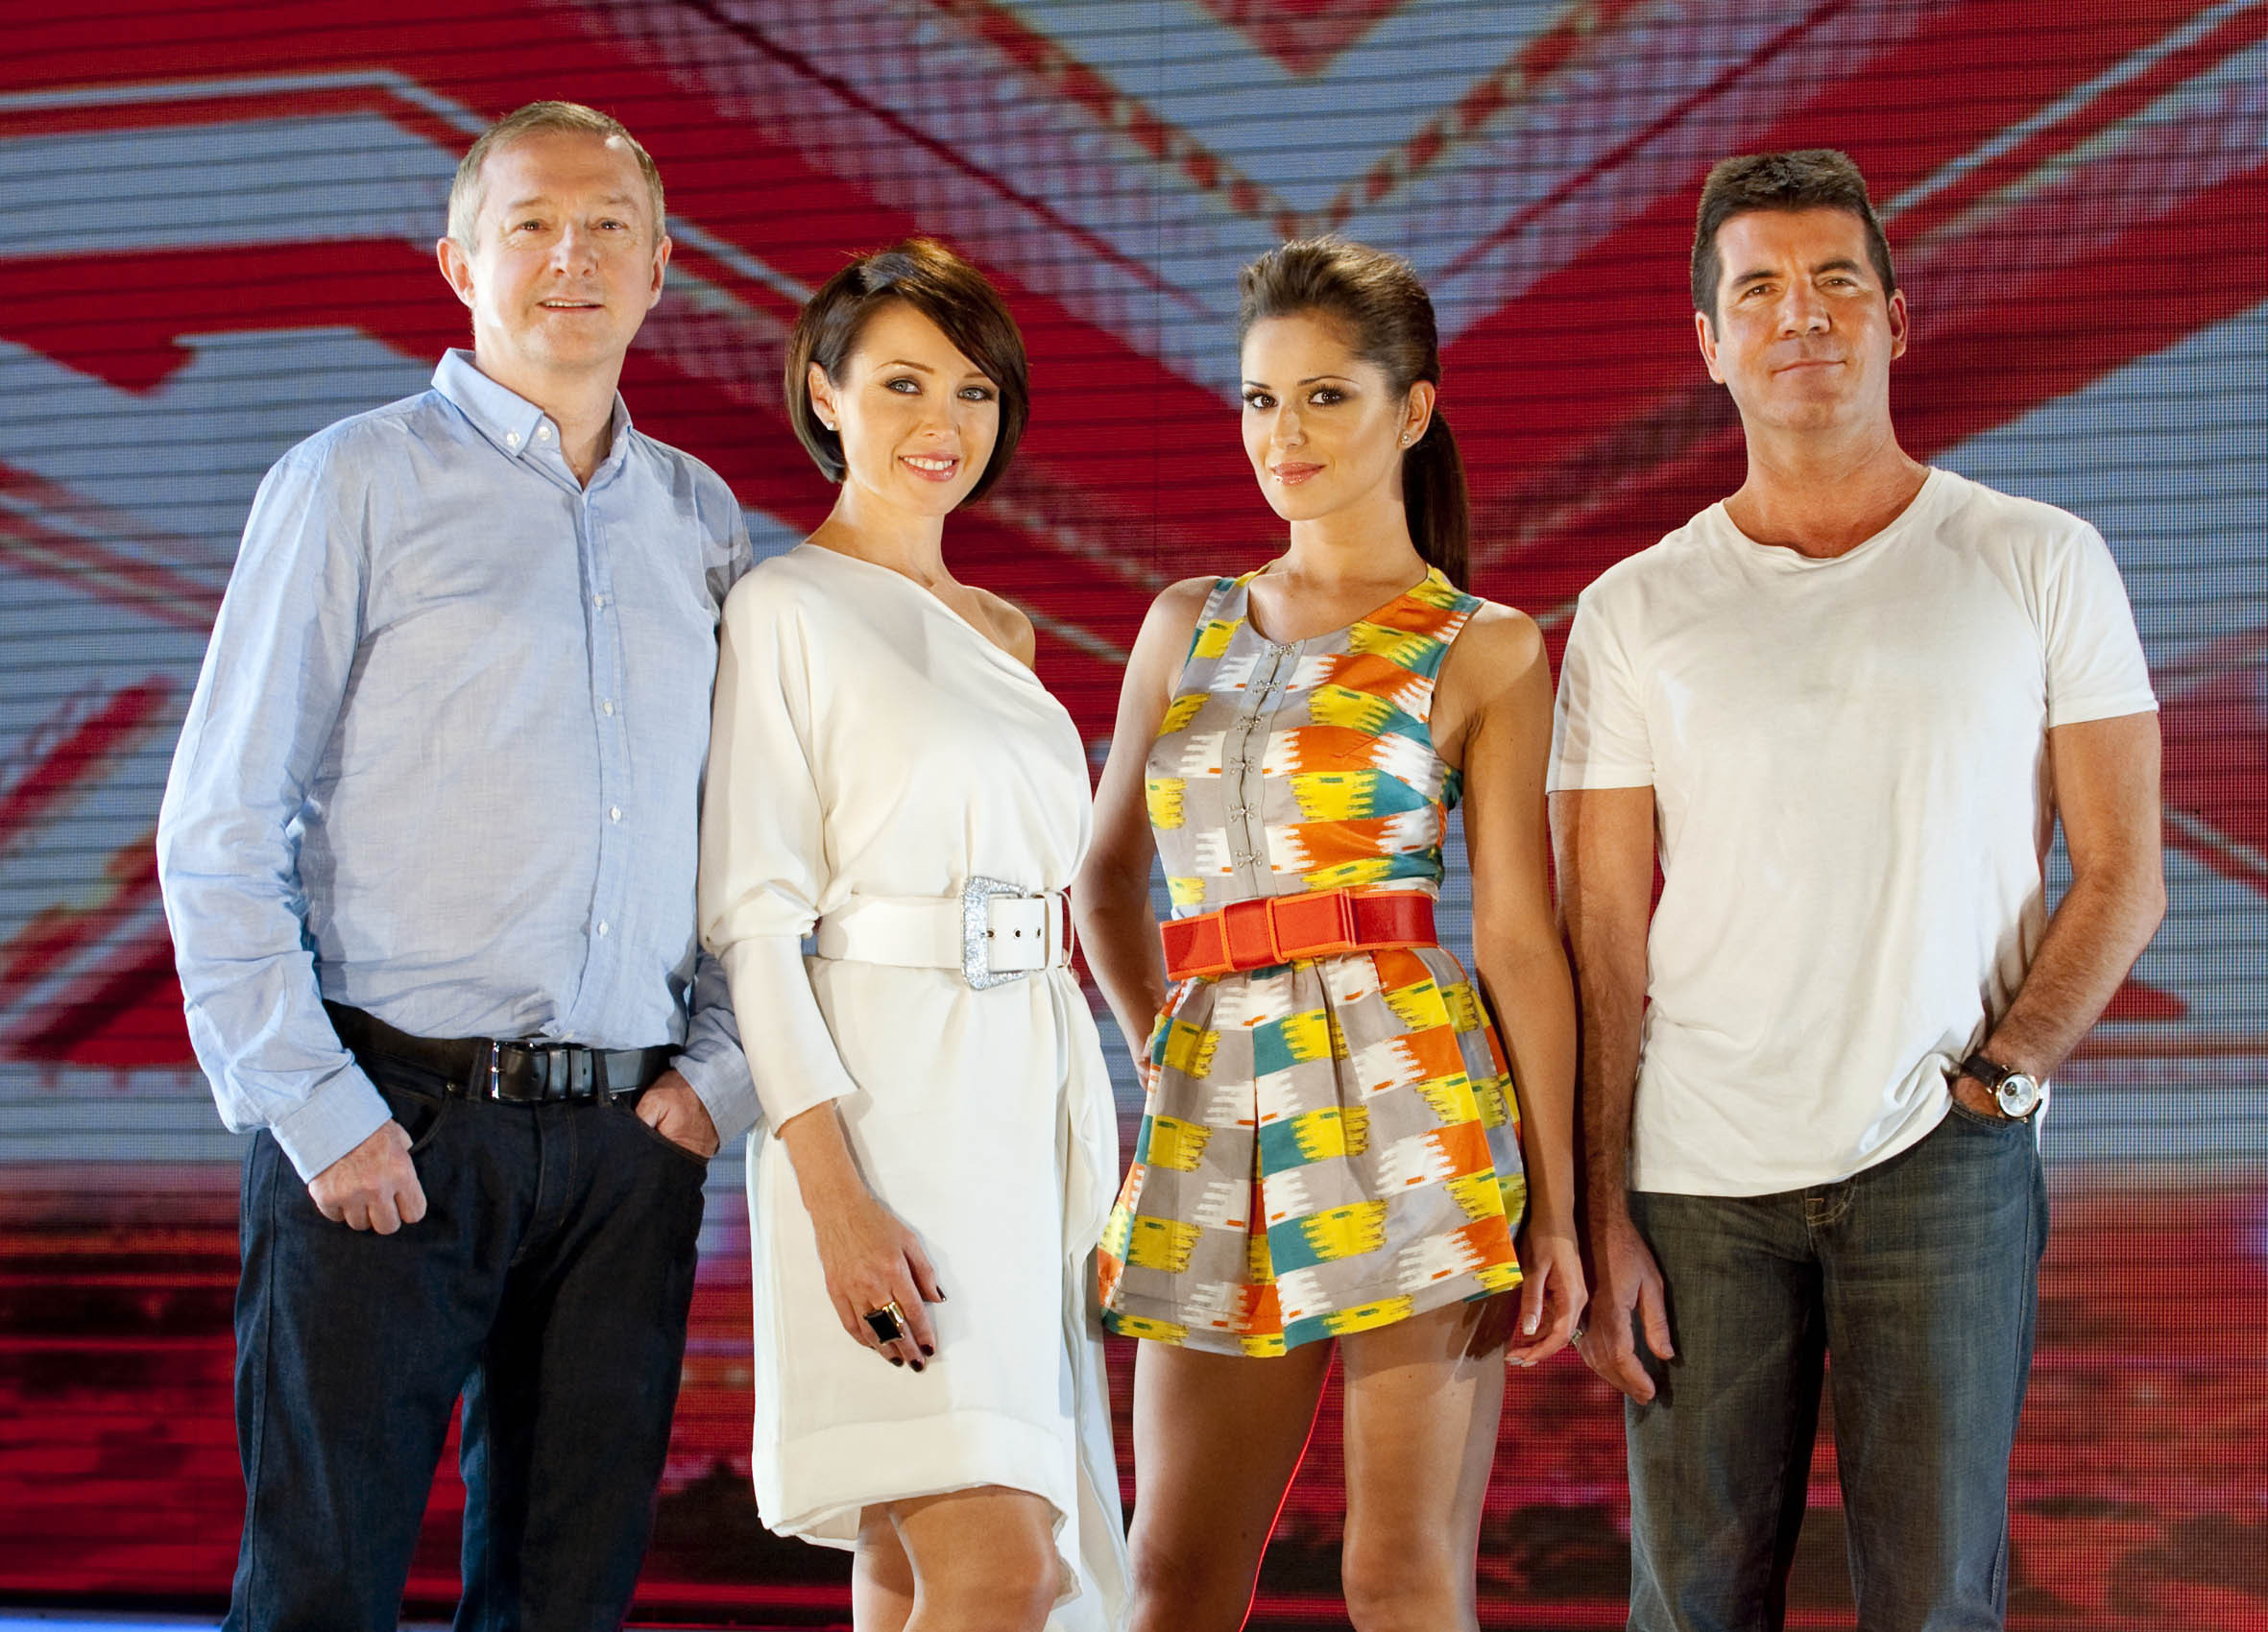 Simon cowell: new judges, change for x factor